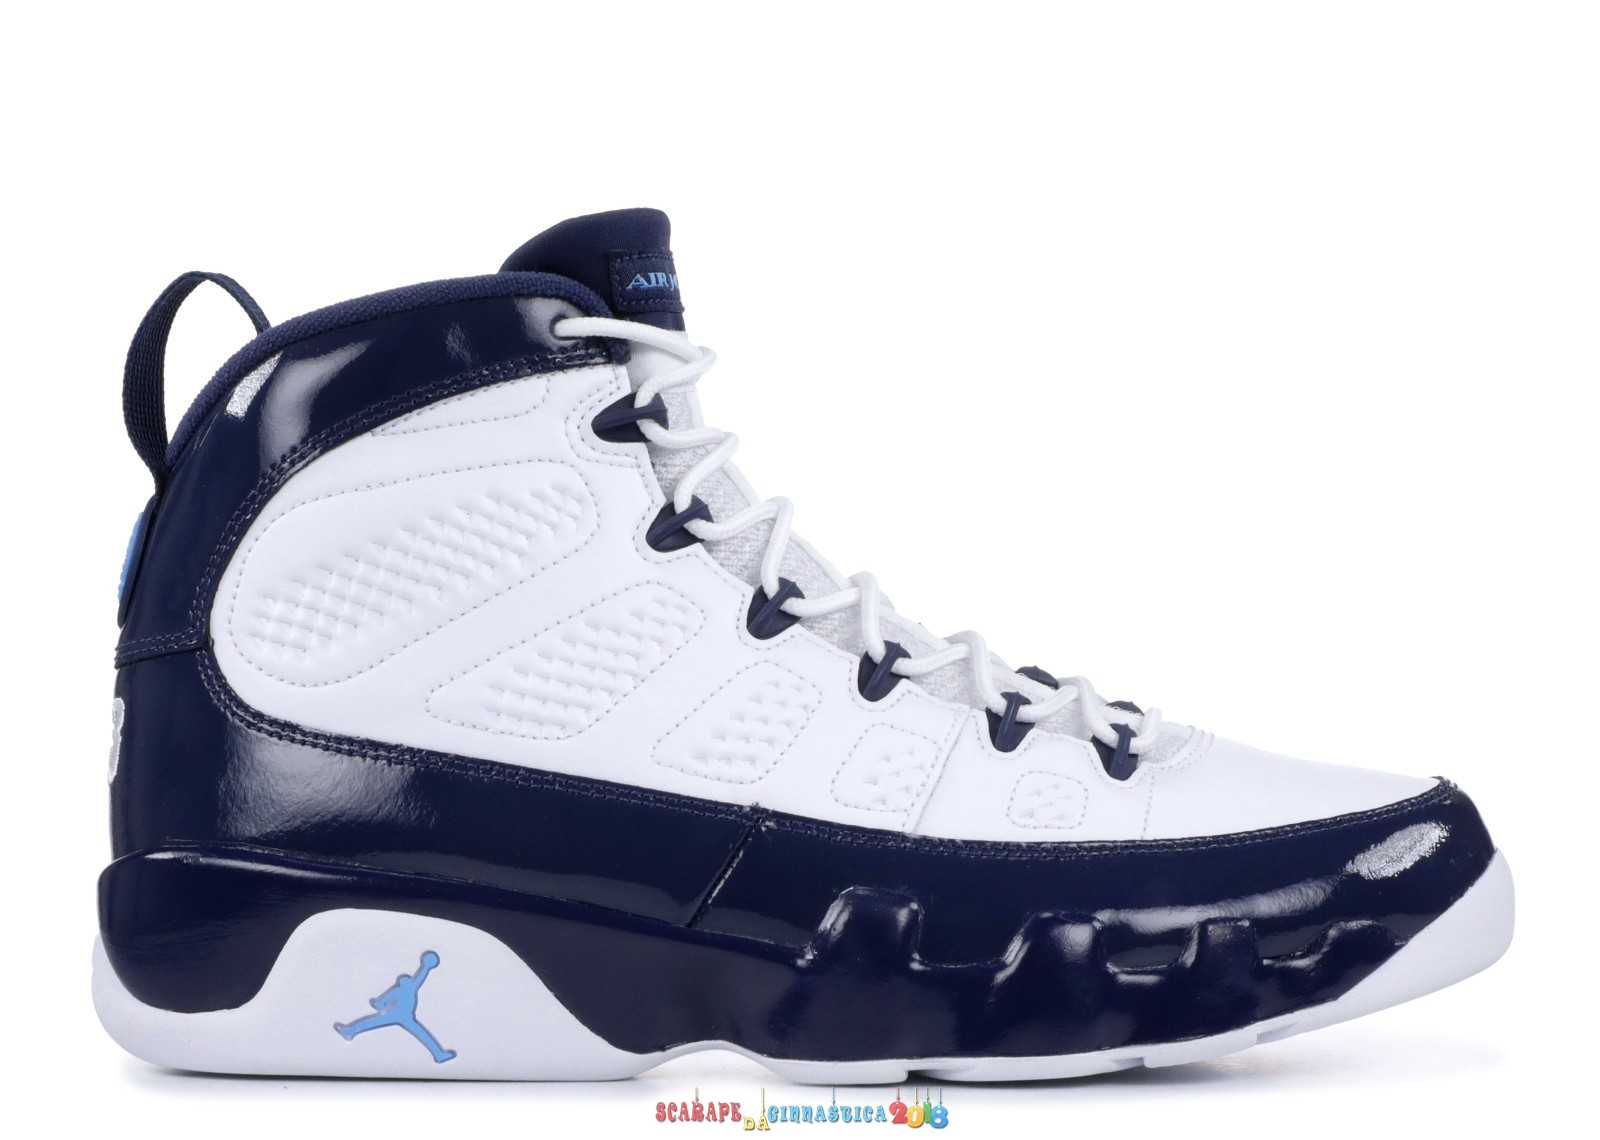 Buy Air Jordan 9 Retro Unc Blu (302370-145) - Uomo Replica